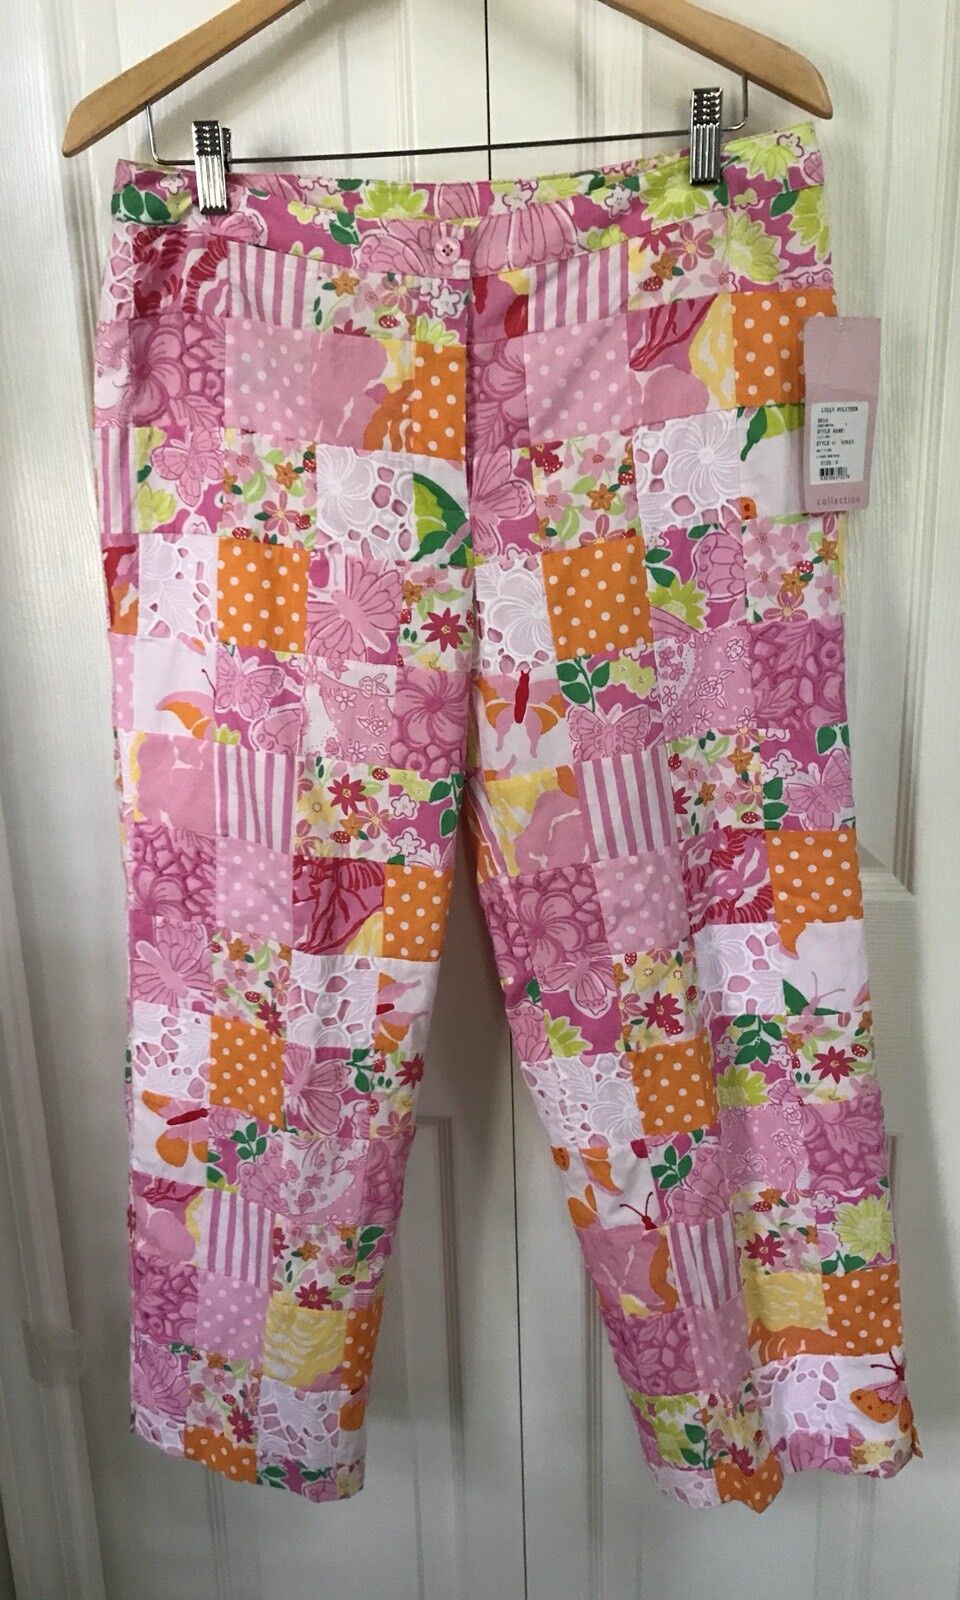 NWT Lilly Pulitzer RARE Vintage Lilly Capri In 2 Minute Sewn Patch SZ 8